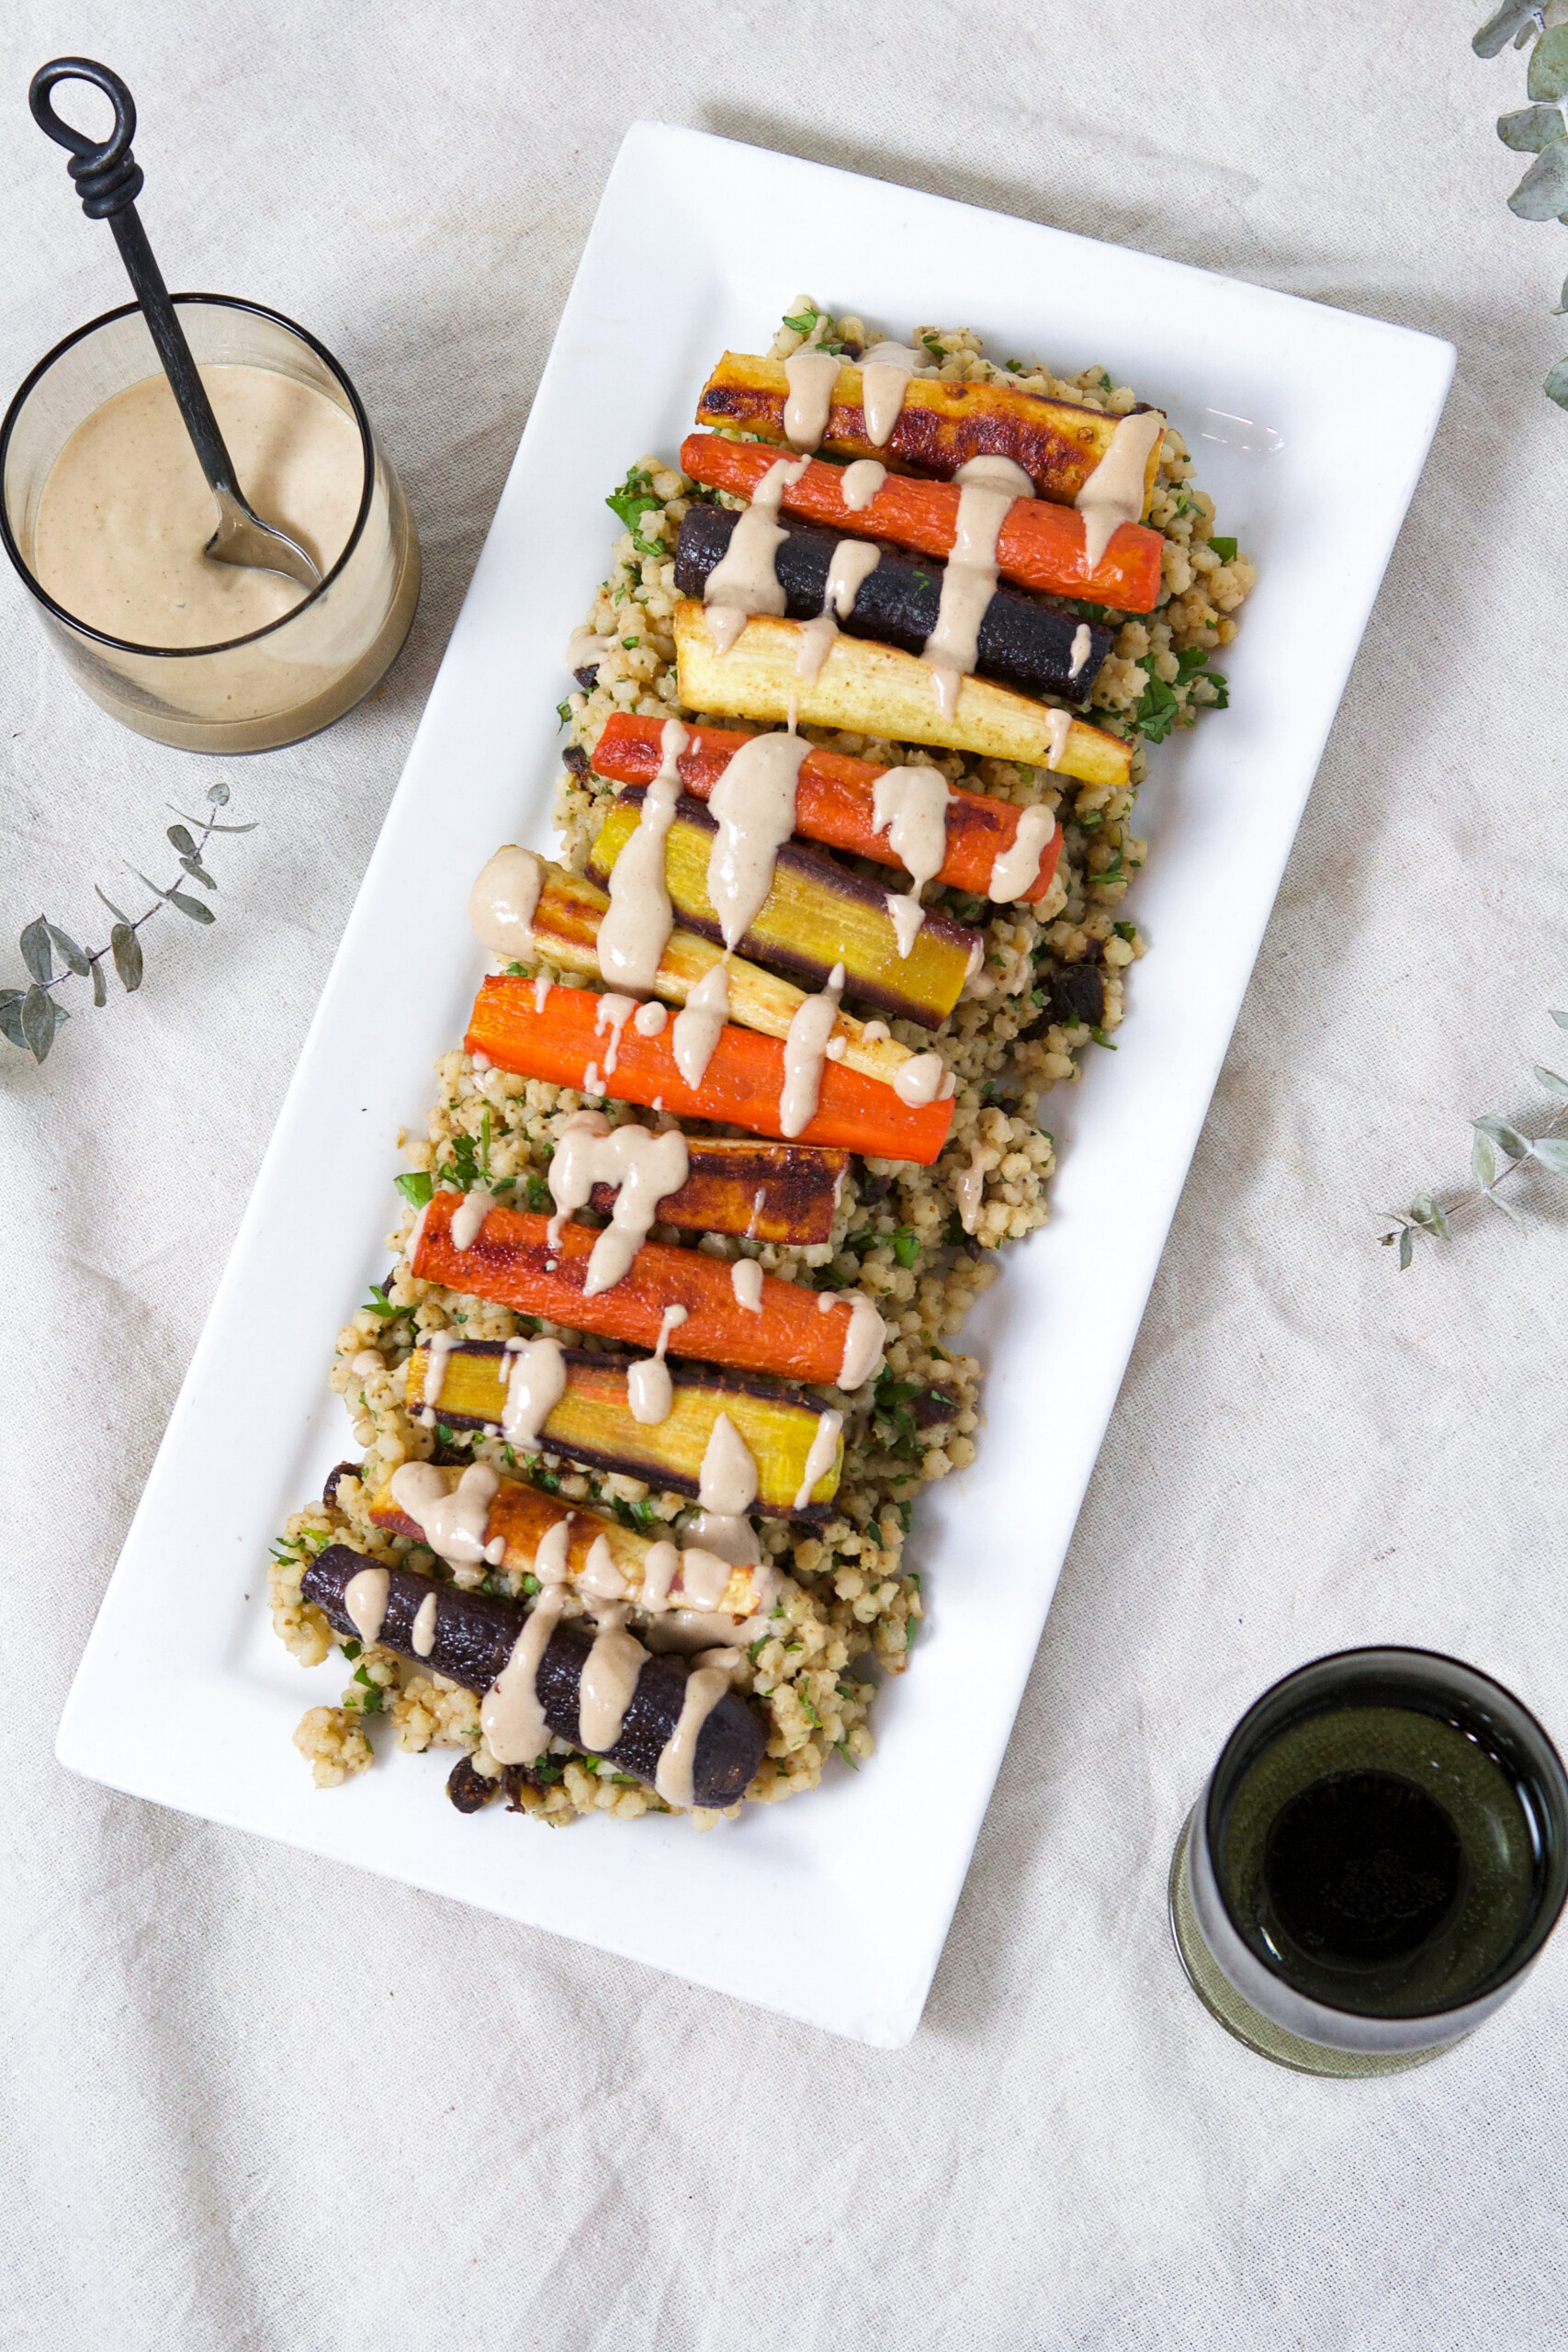 Roasted Root Vegetables & Sorghum Pilaf with Tahini Sauce   Zestful Kitchen